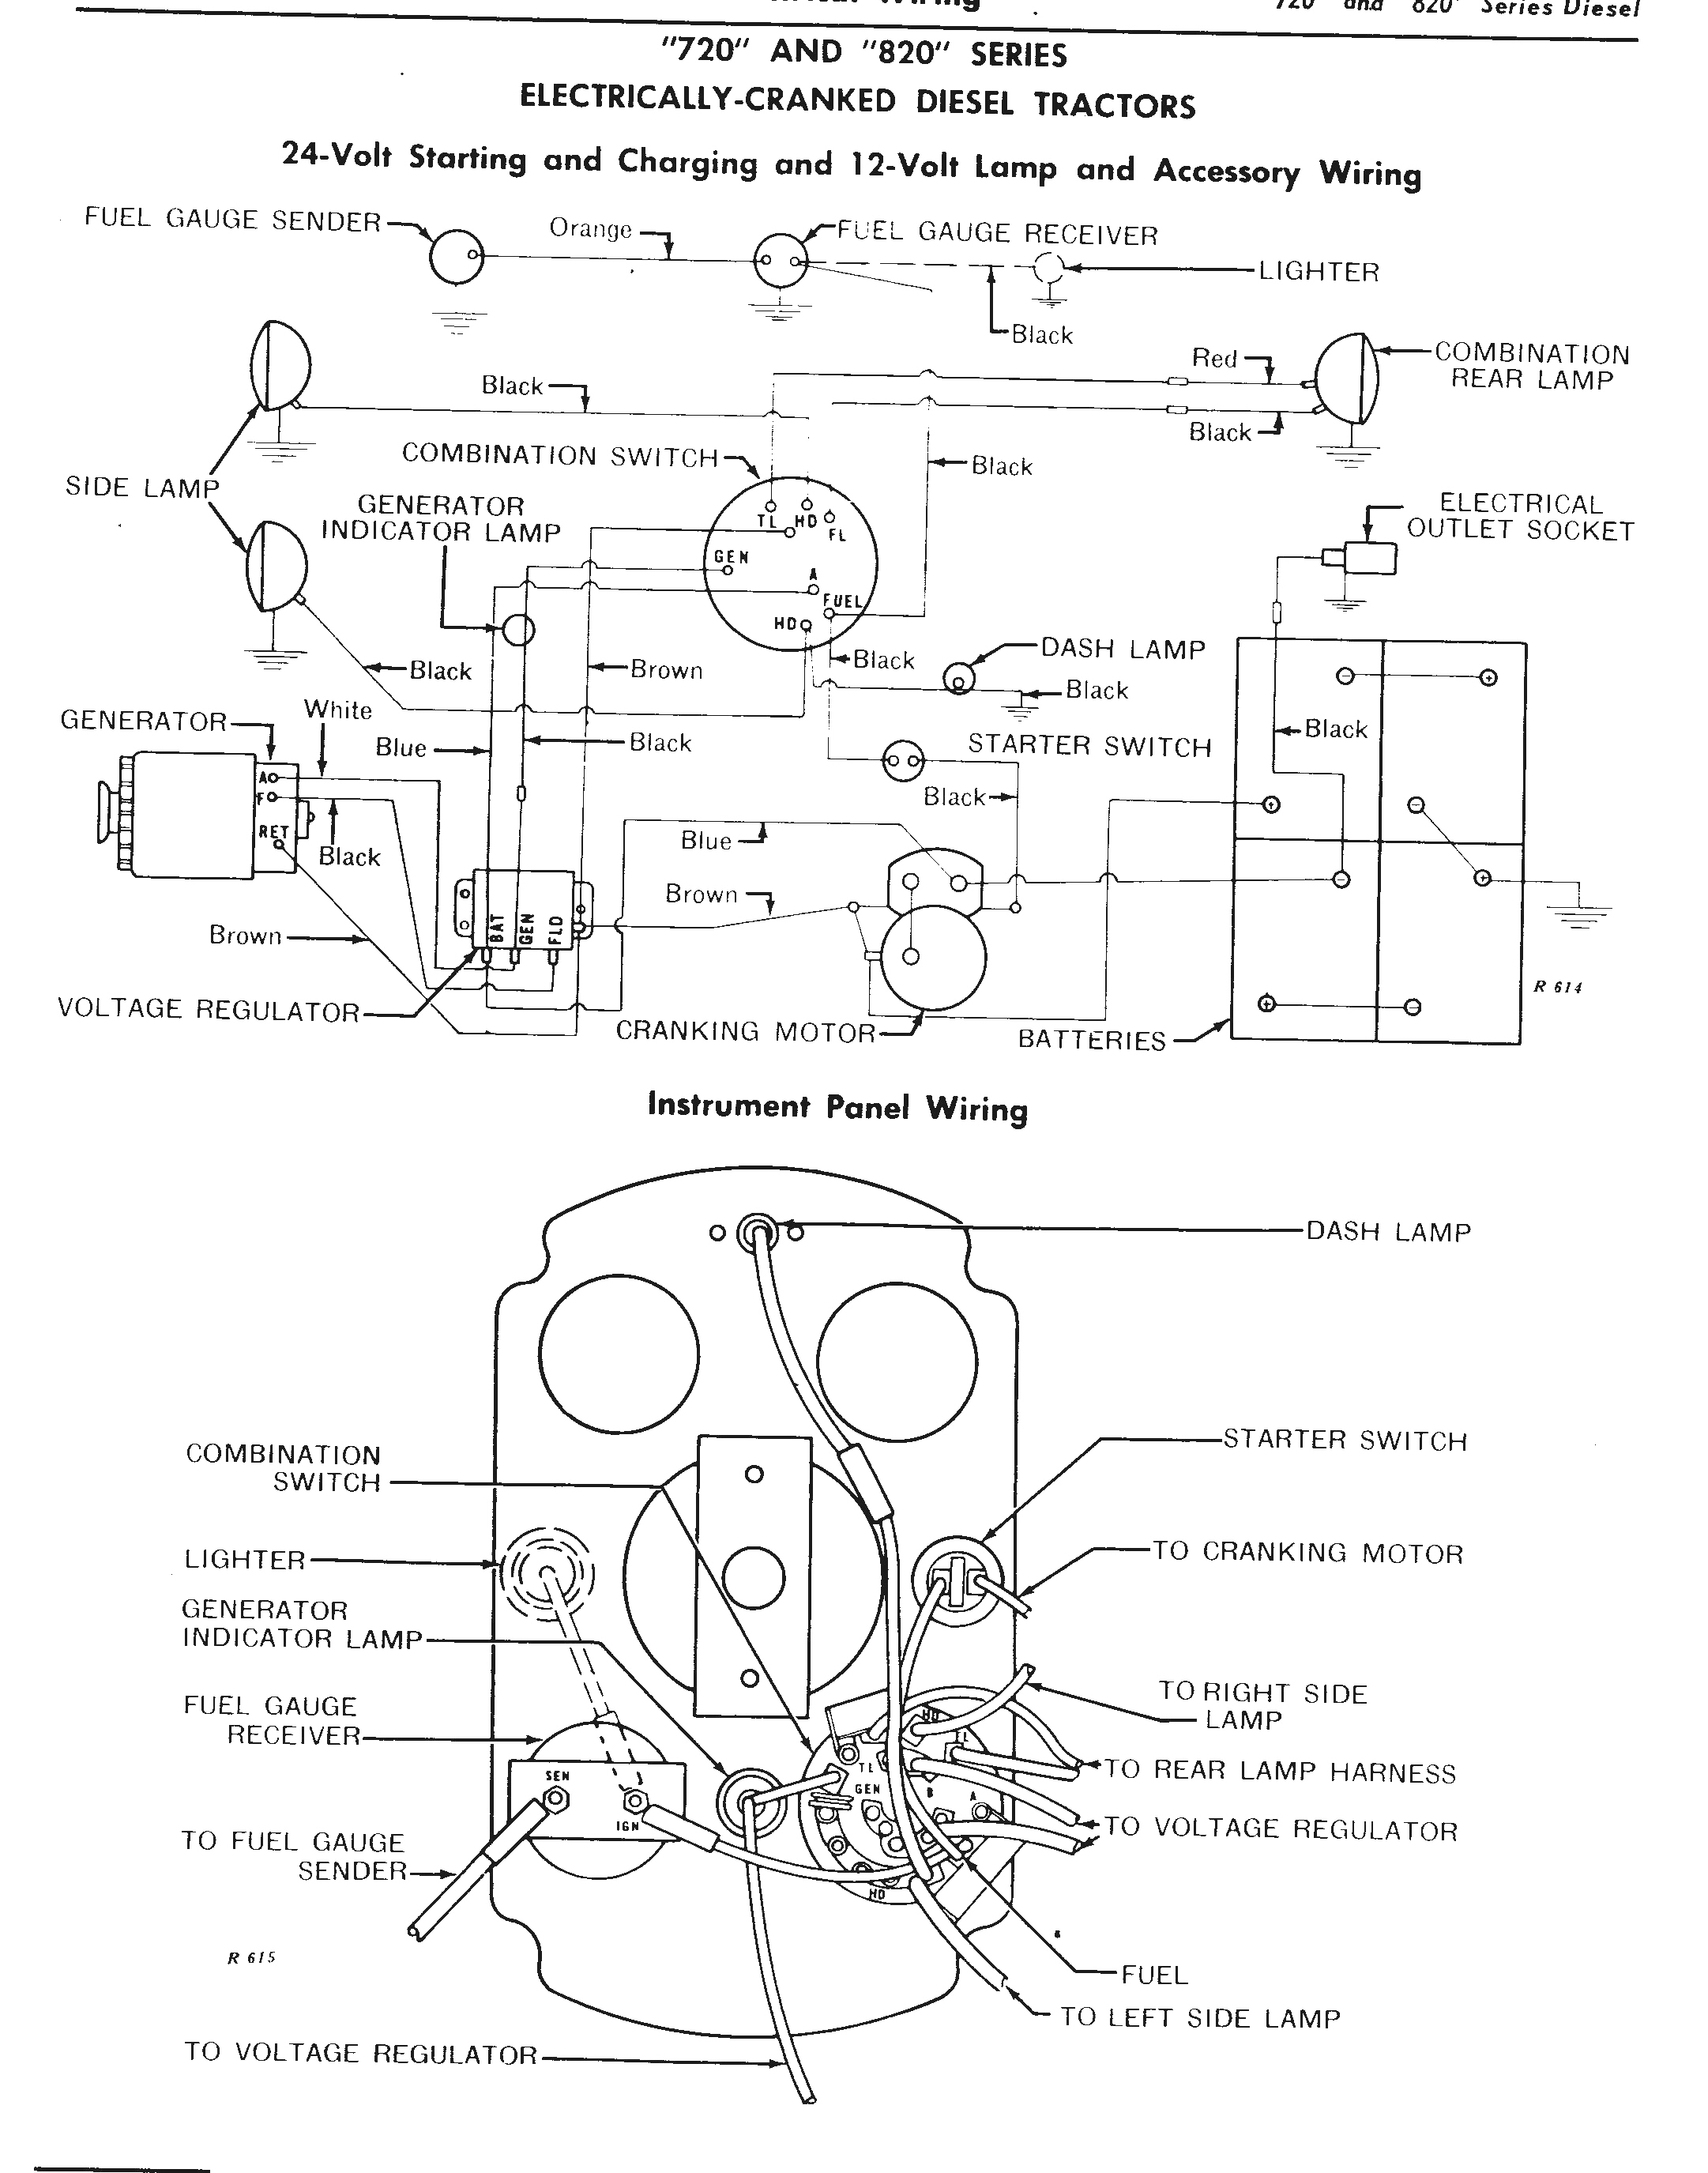 The John Deere 24 Volt Electrical System Explained Wiring Diagram For 6410